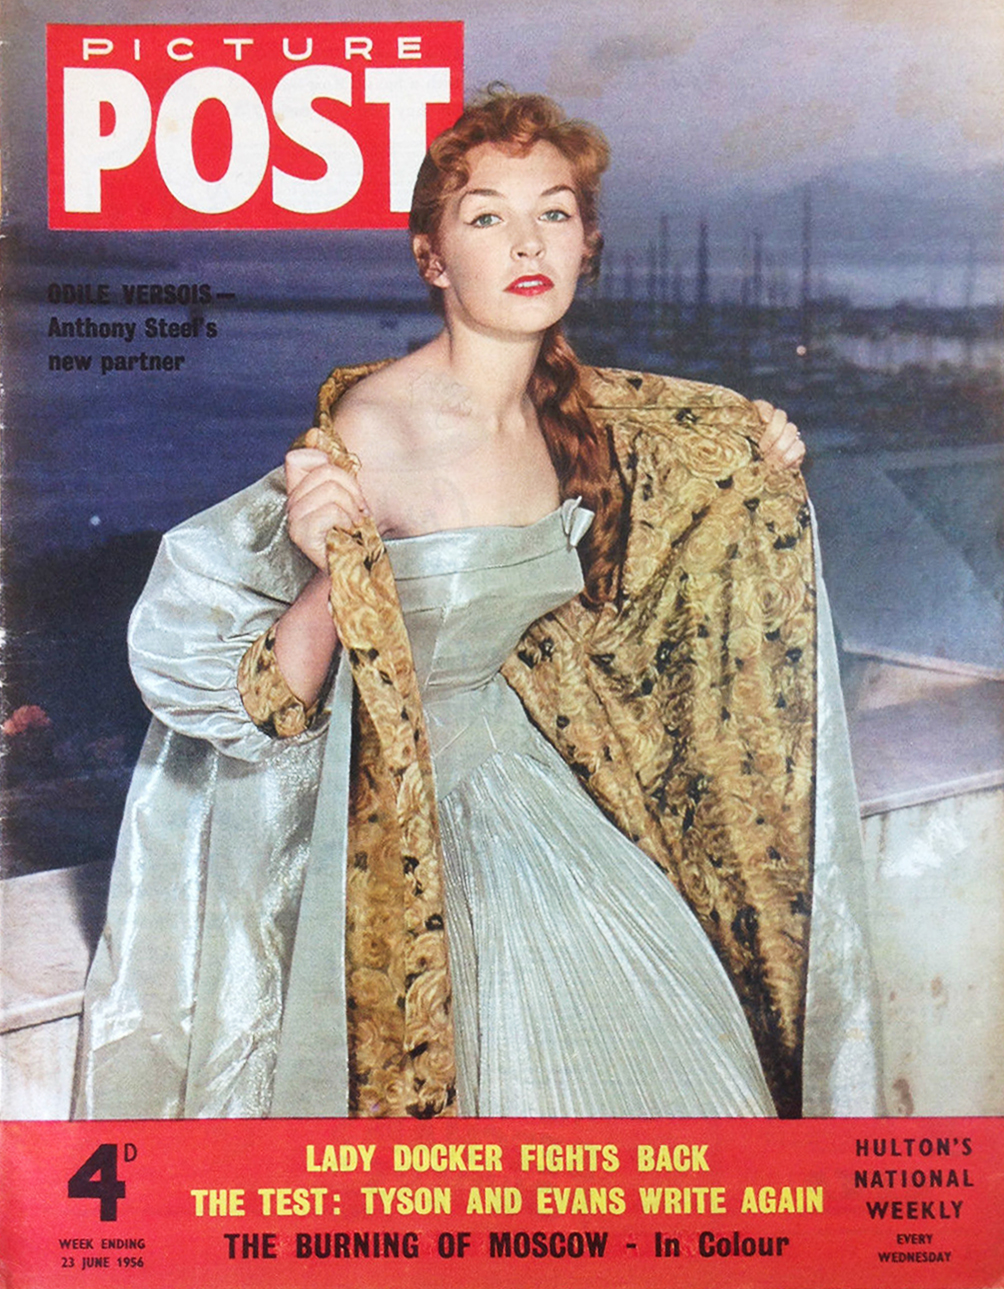 The first issue in colour in 1957